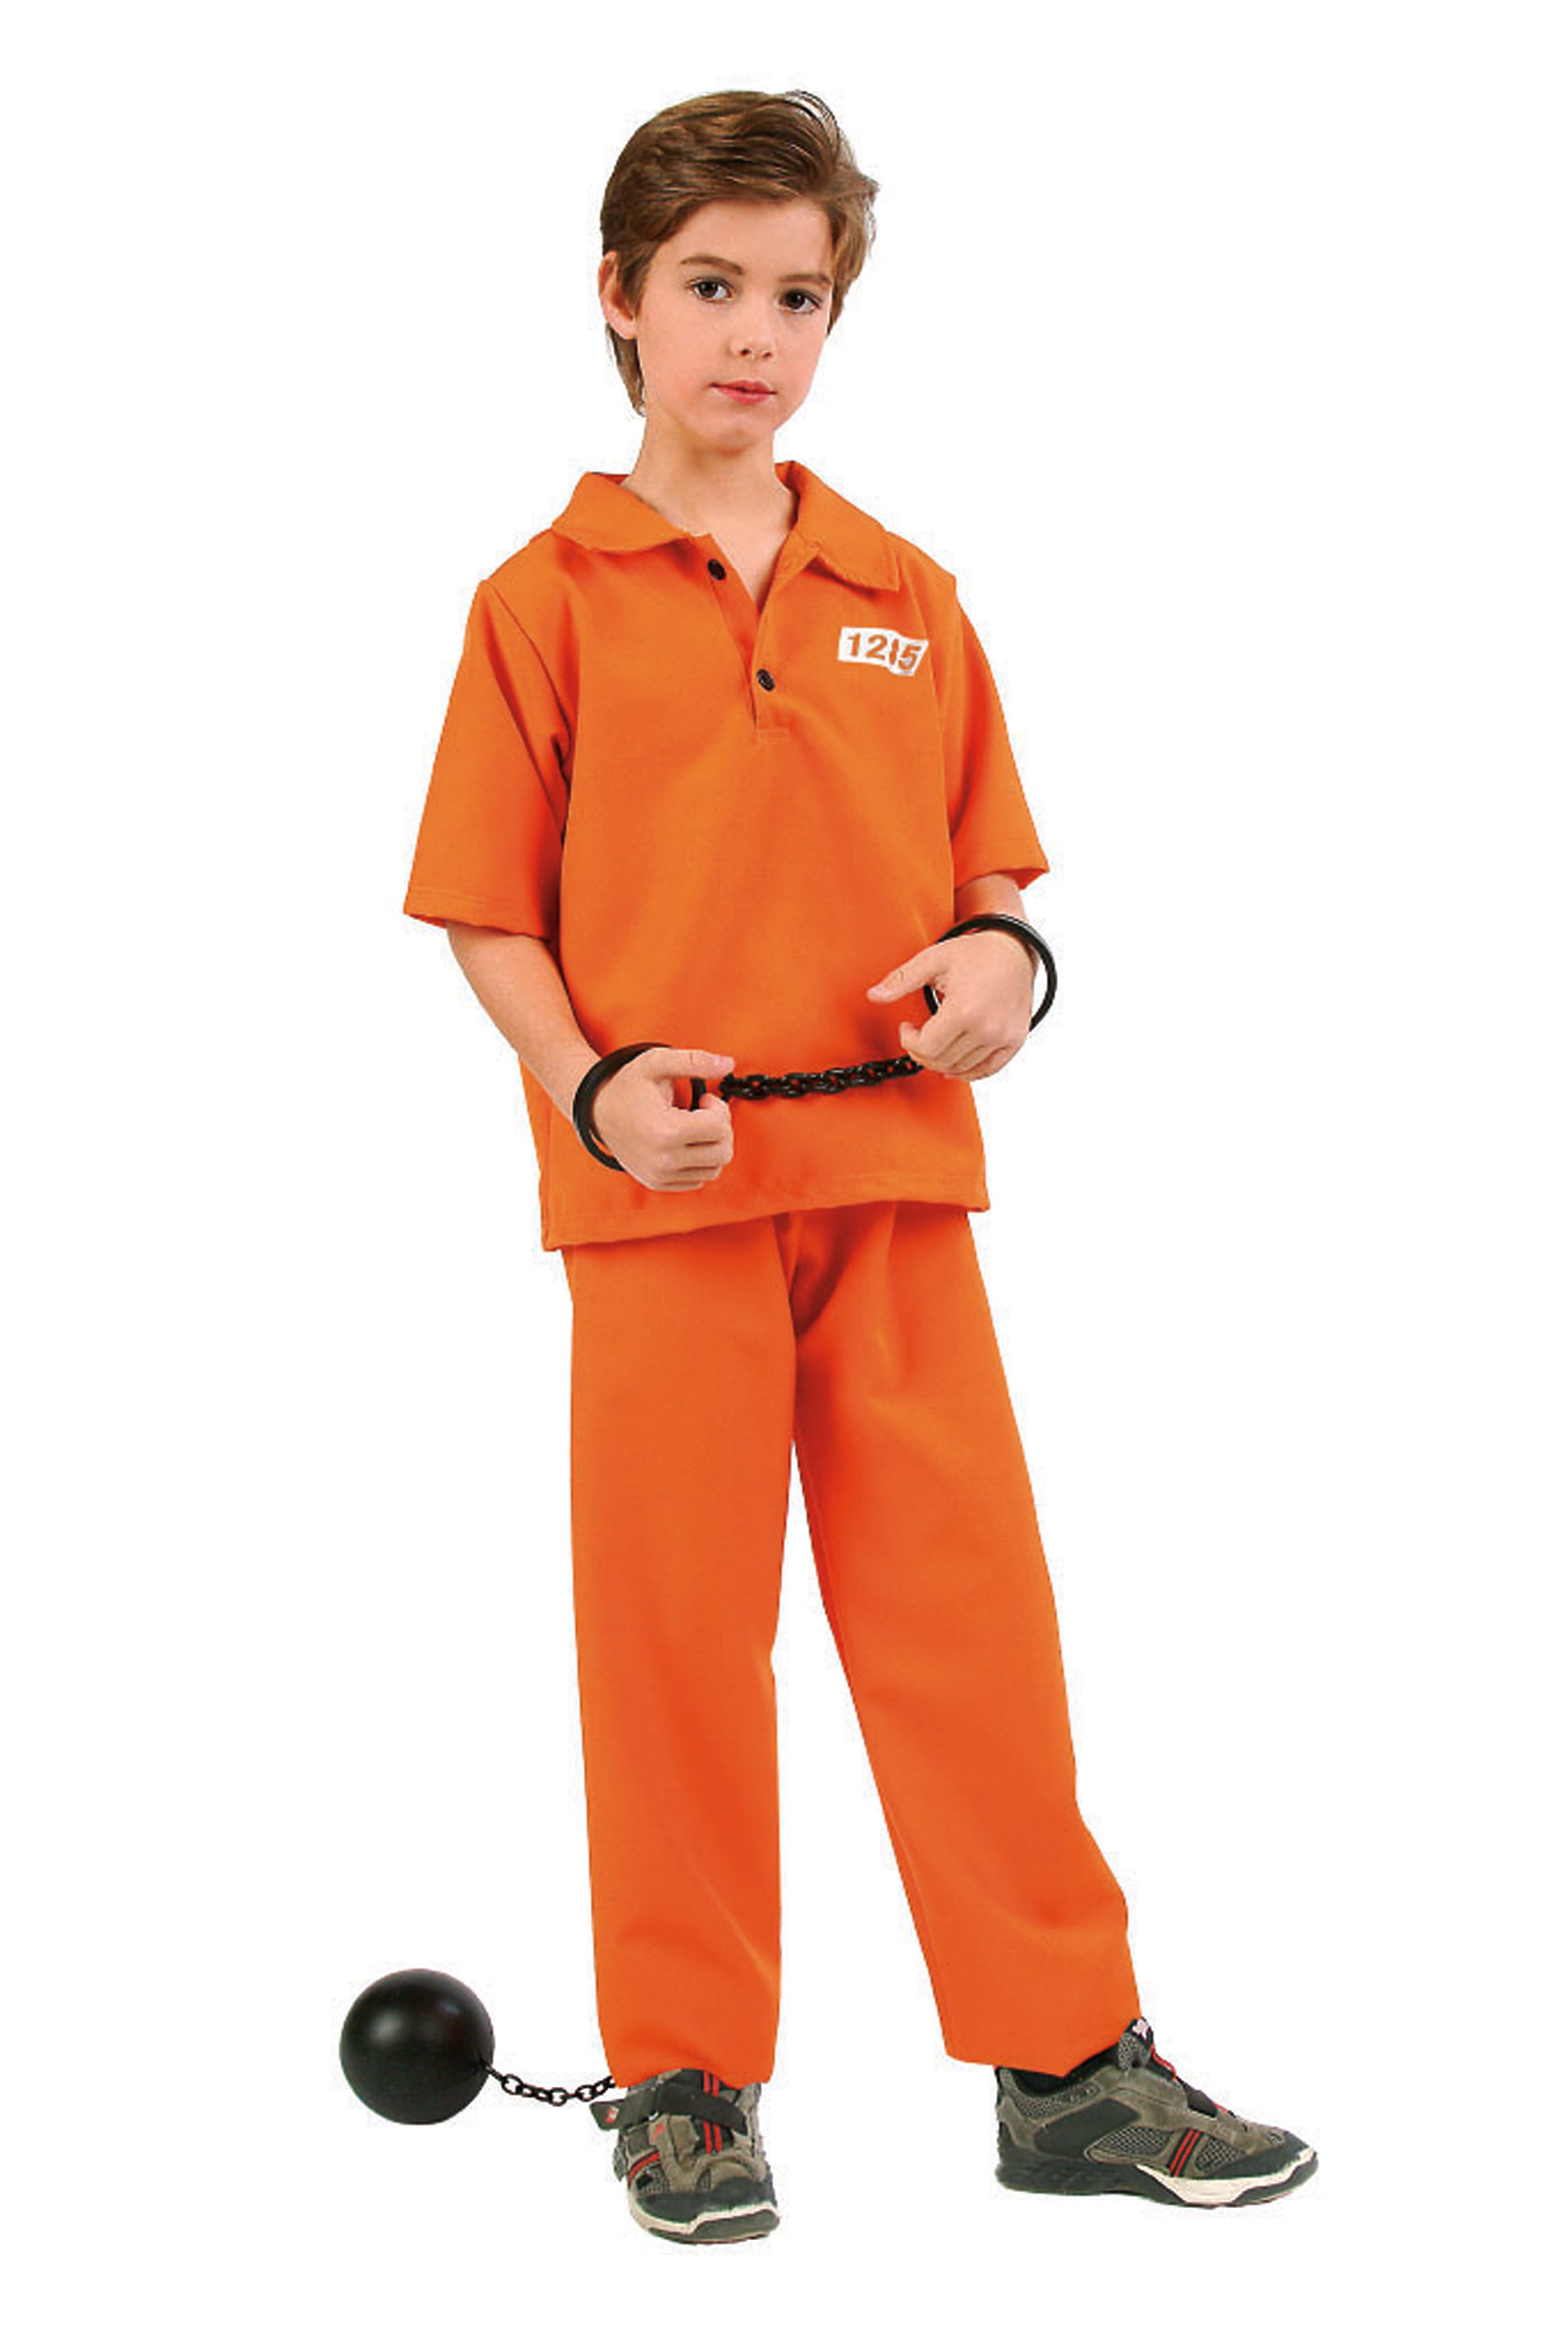 Boys Costume Style Guilty Jailor